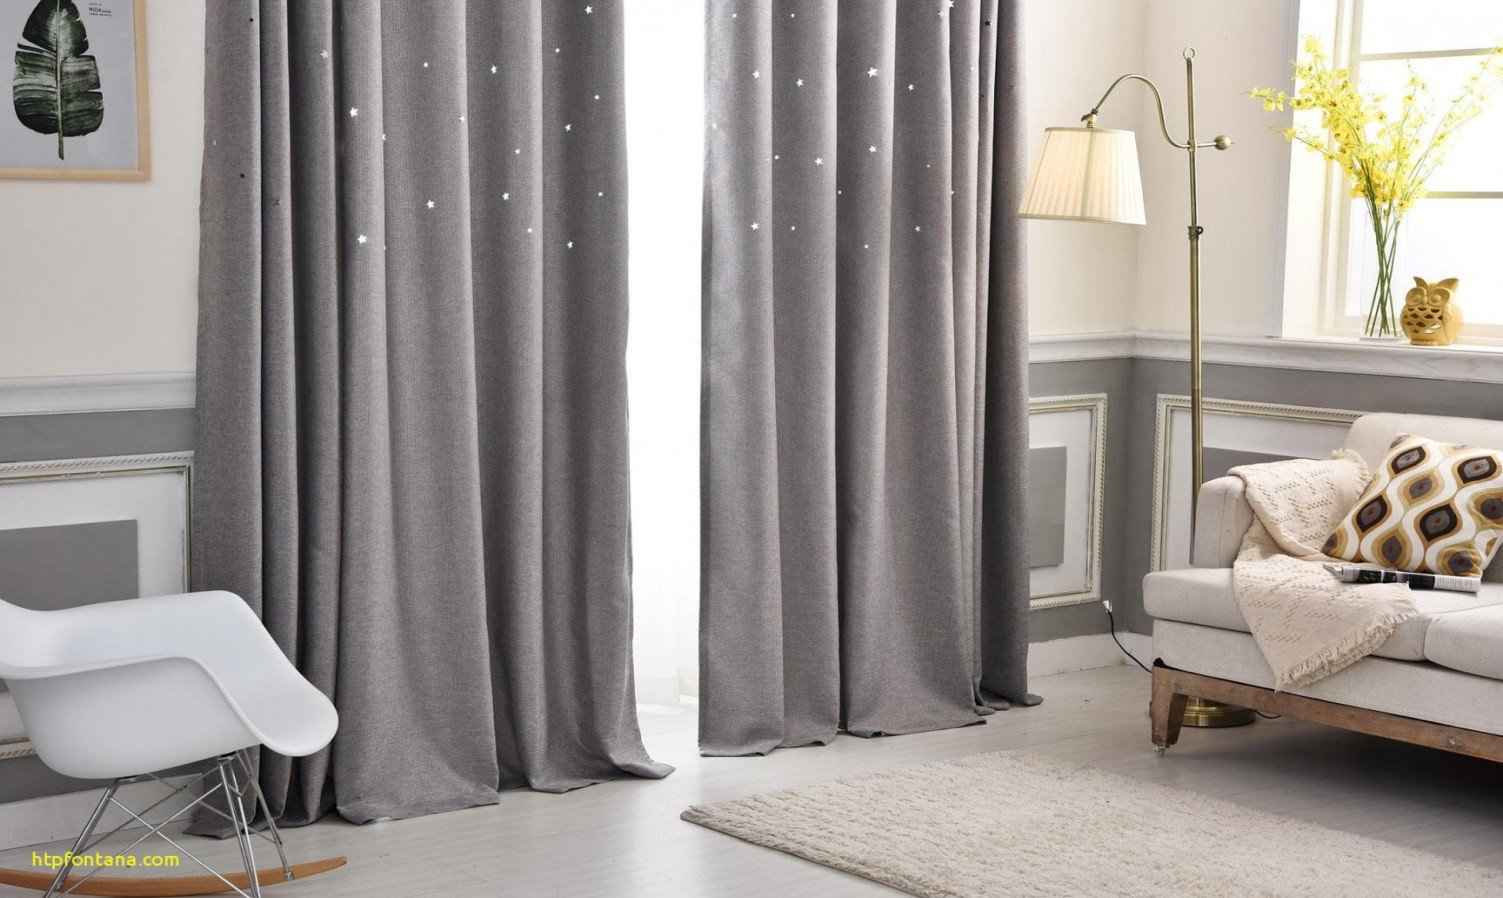 Curtain Styles for Bedroom New Modern Style Living Room 12 Modern Curtains Designs Living